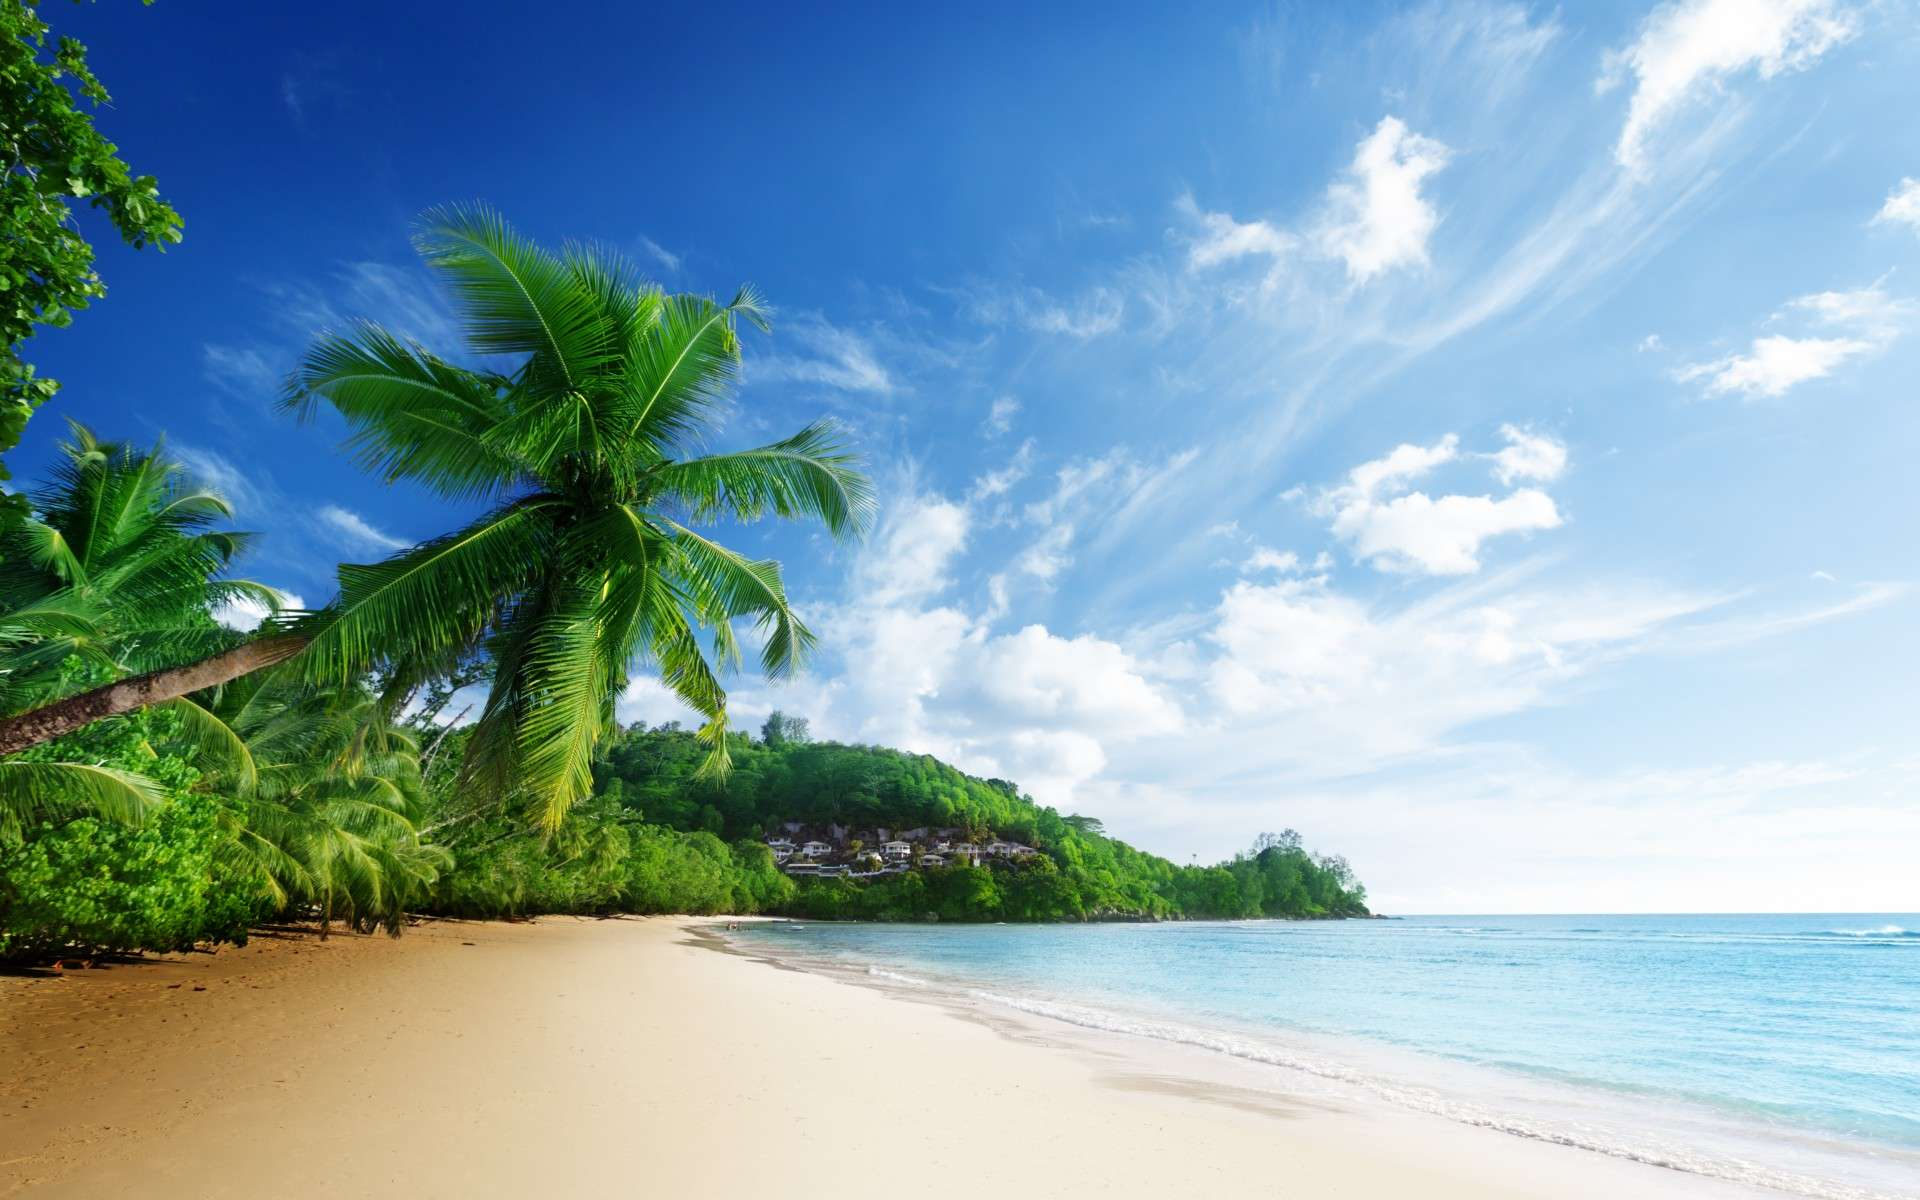 Beach Scenery HD Wallpapers